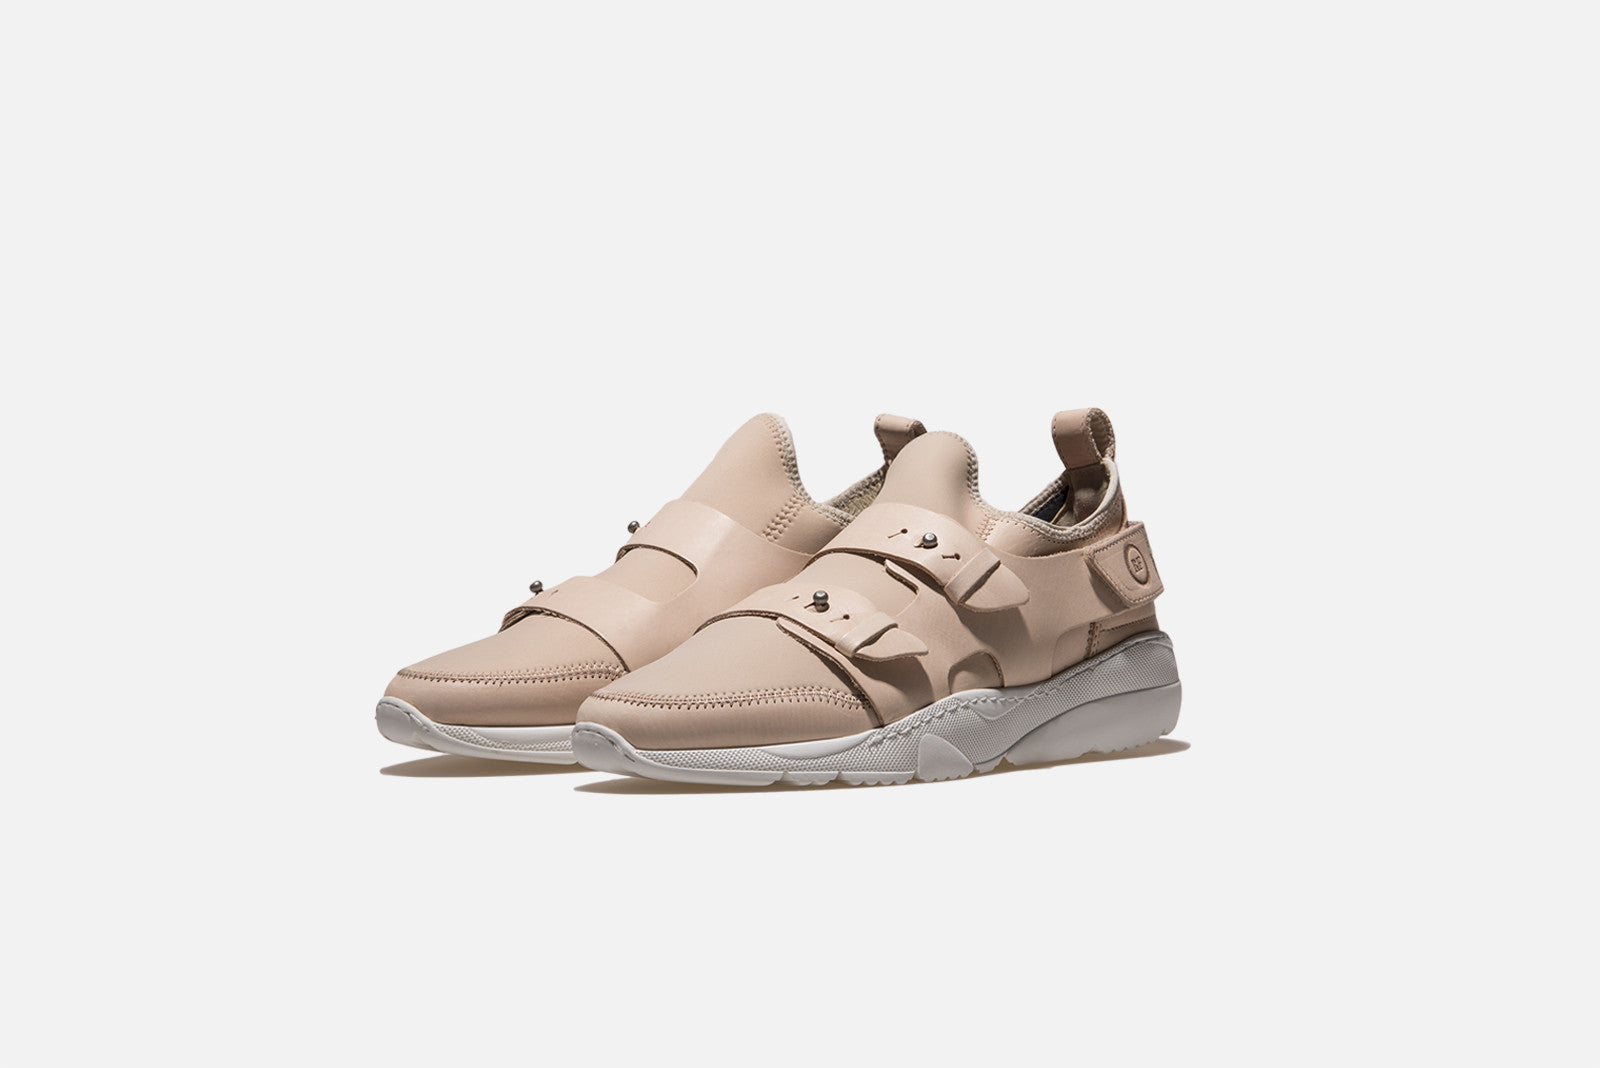 Ronnie Fieg x Filling Pieces Sandal Trainer - Vegtan